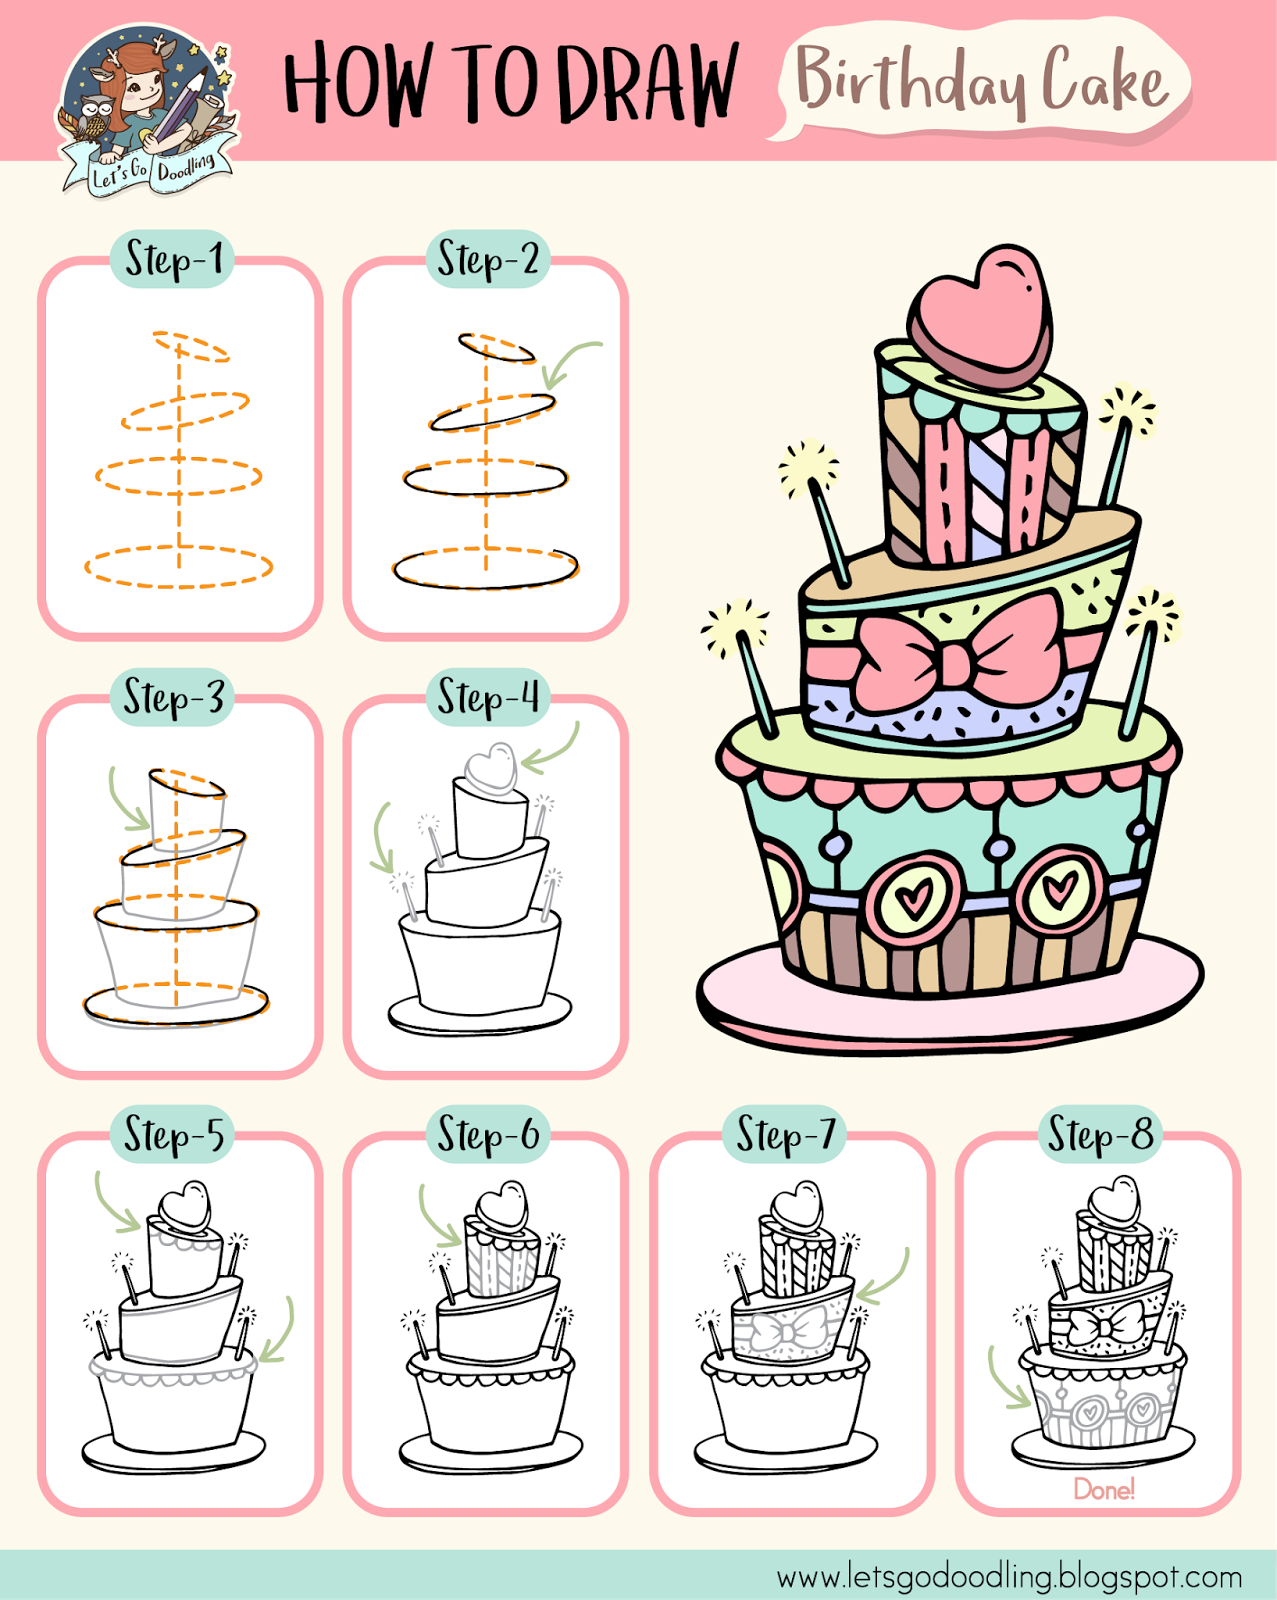 How To Draw Birthday Cake Easy Step By Step Drawing Tutorial